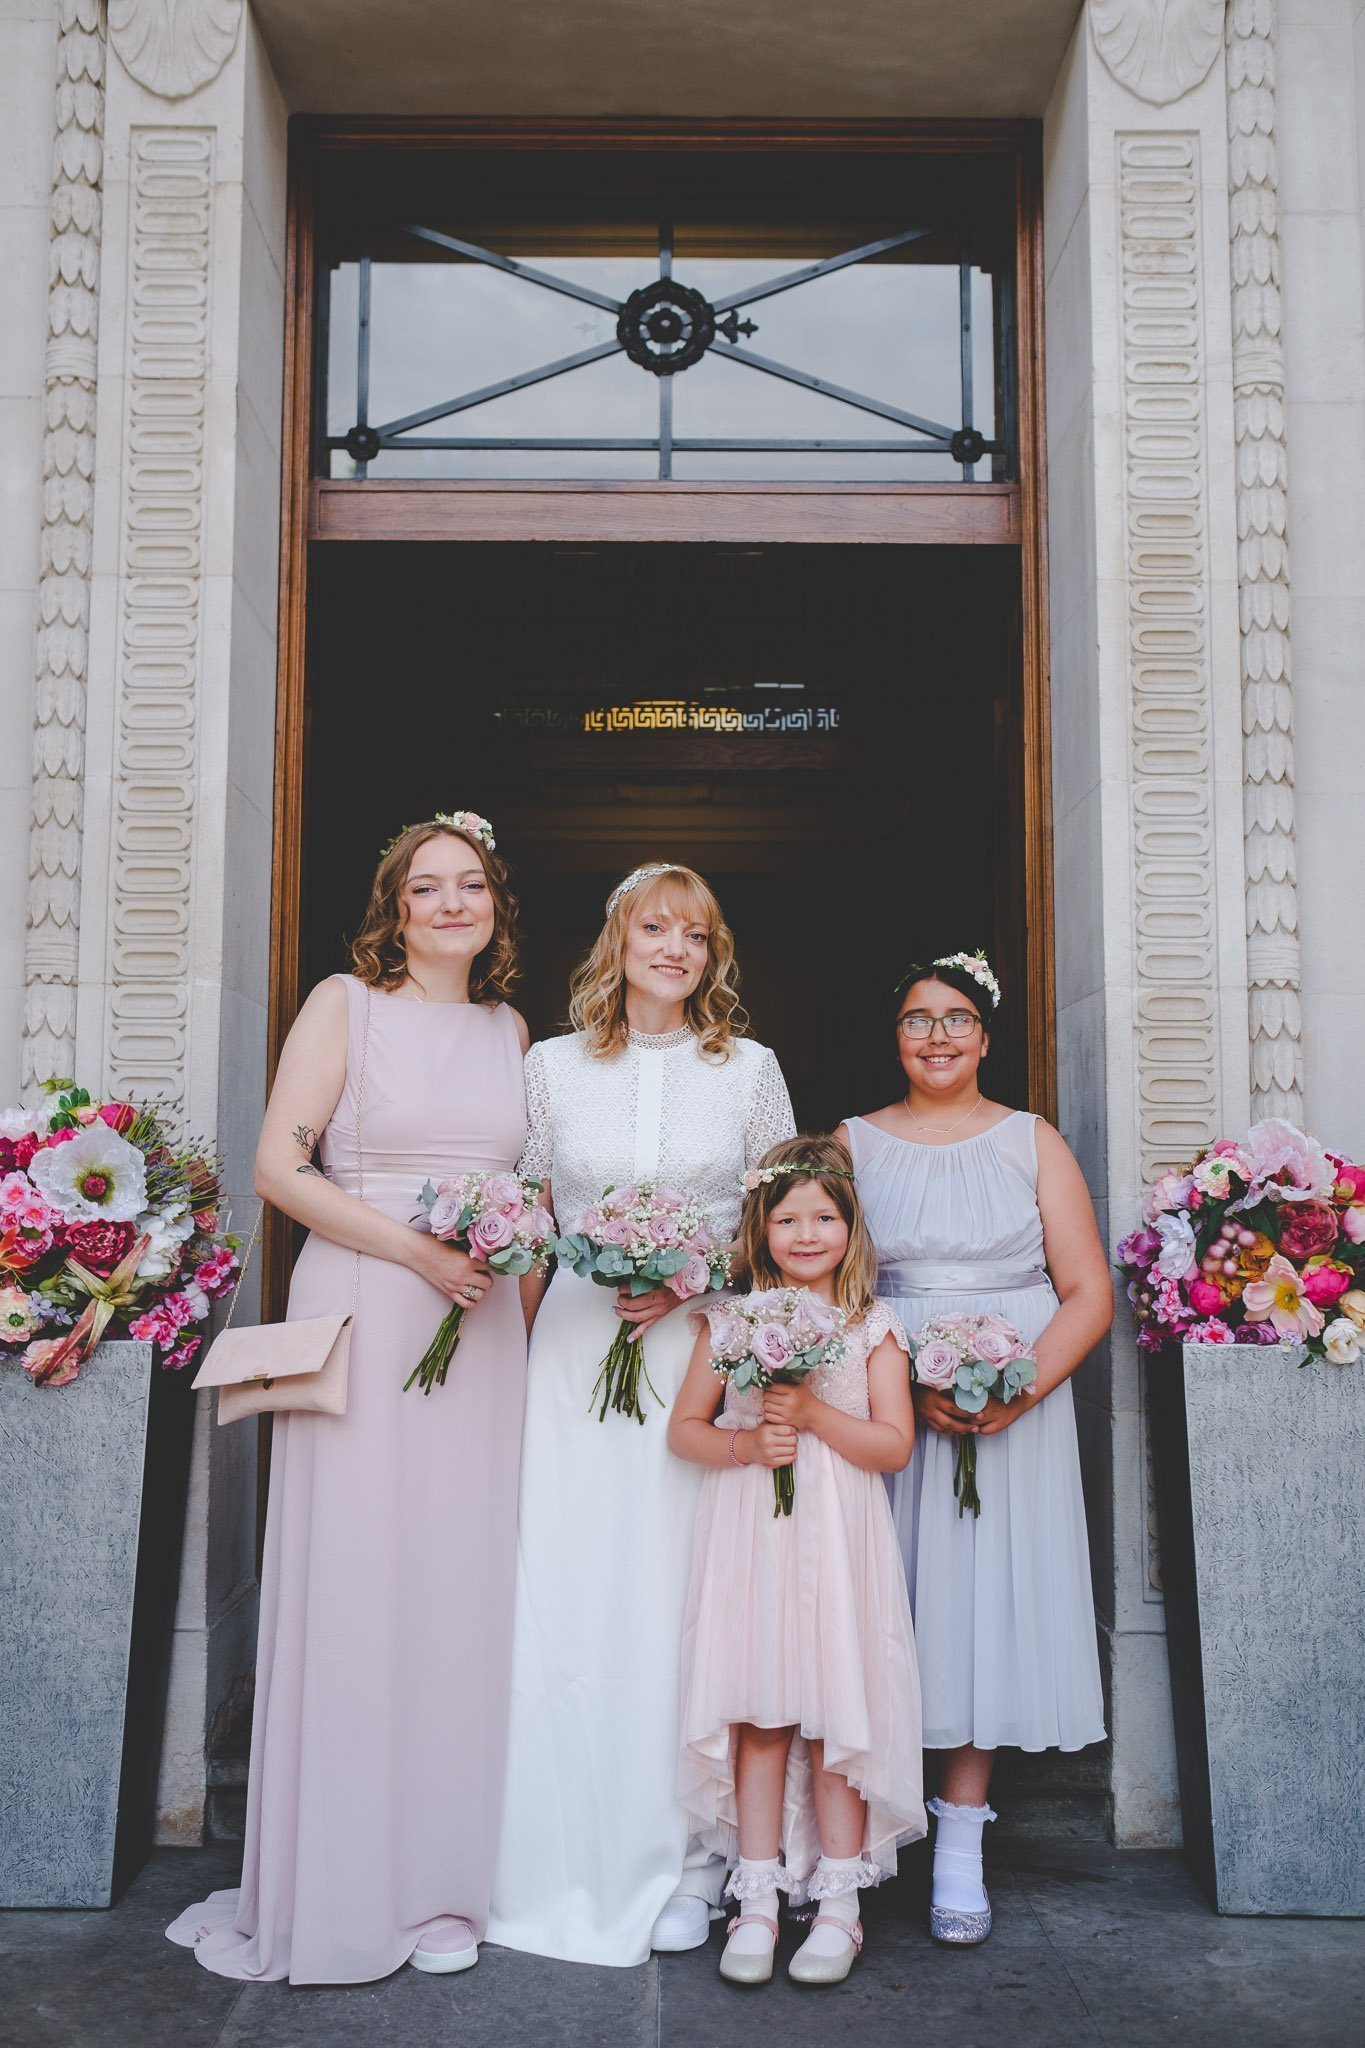 Portrait of bride and bridesmaids outside the Old Marylebone Town Hall London. Photography by thatthingyoupluck.